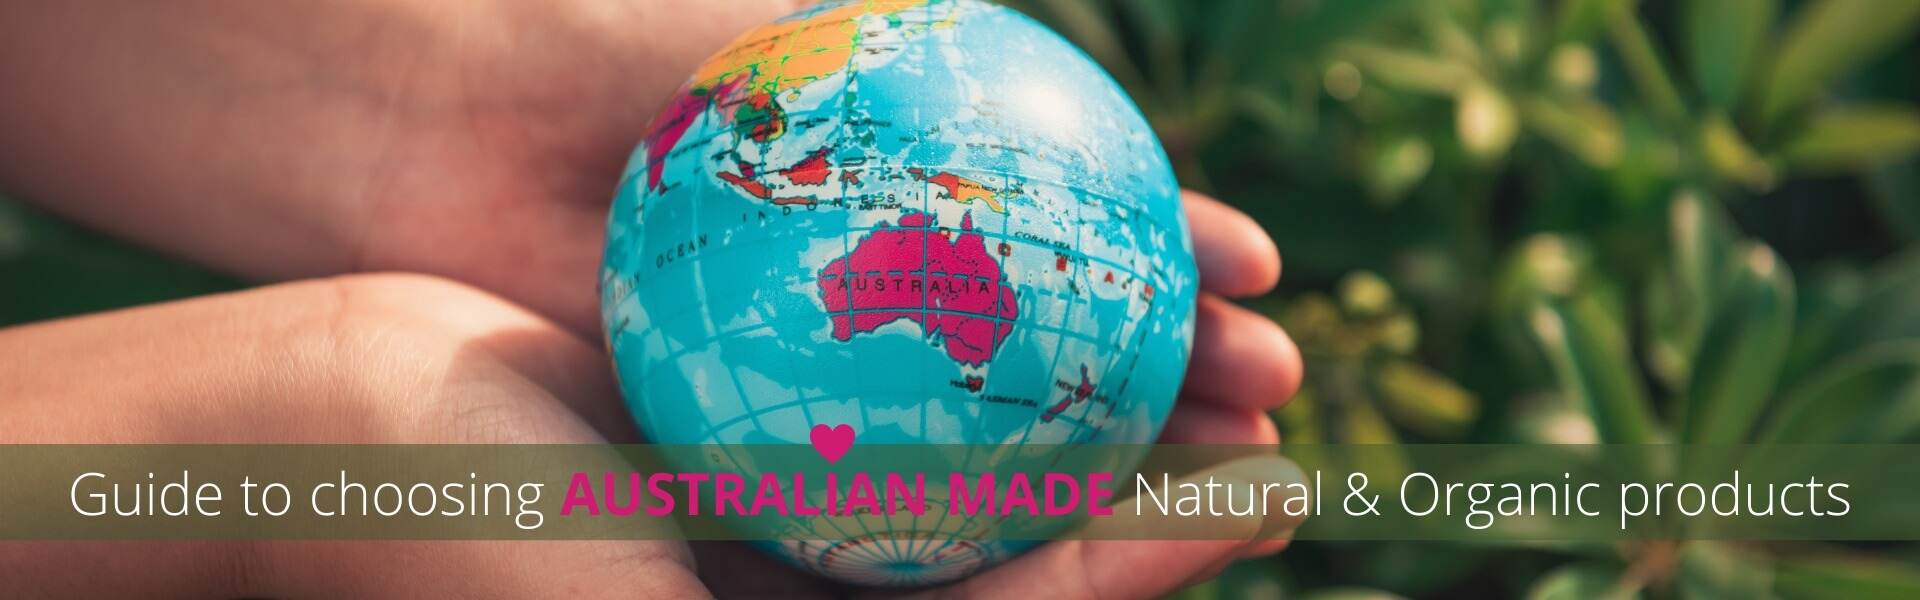 Naturally Safe Cosmetics' Guide to buying Australian Made